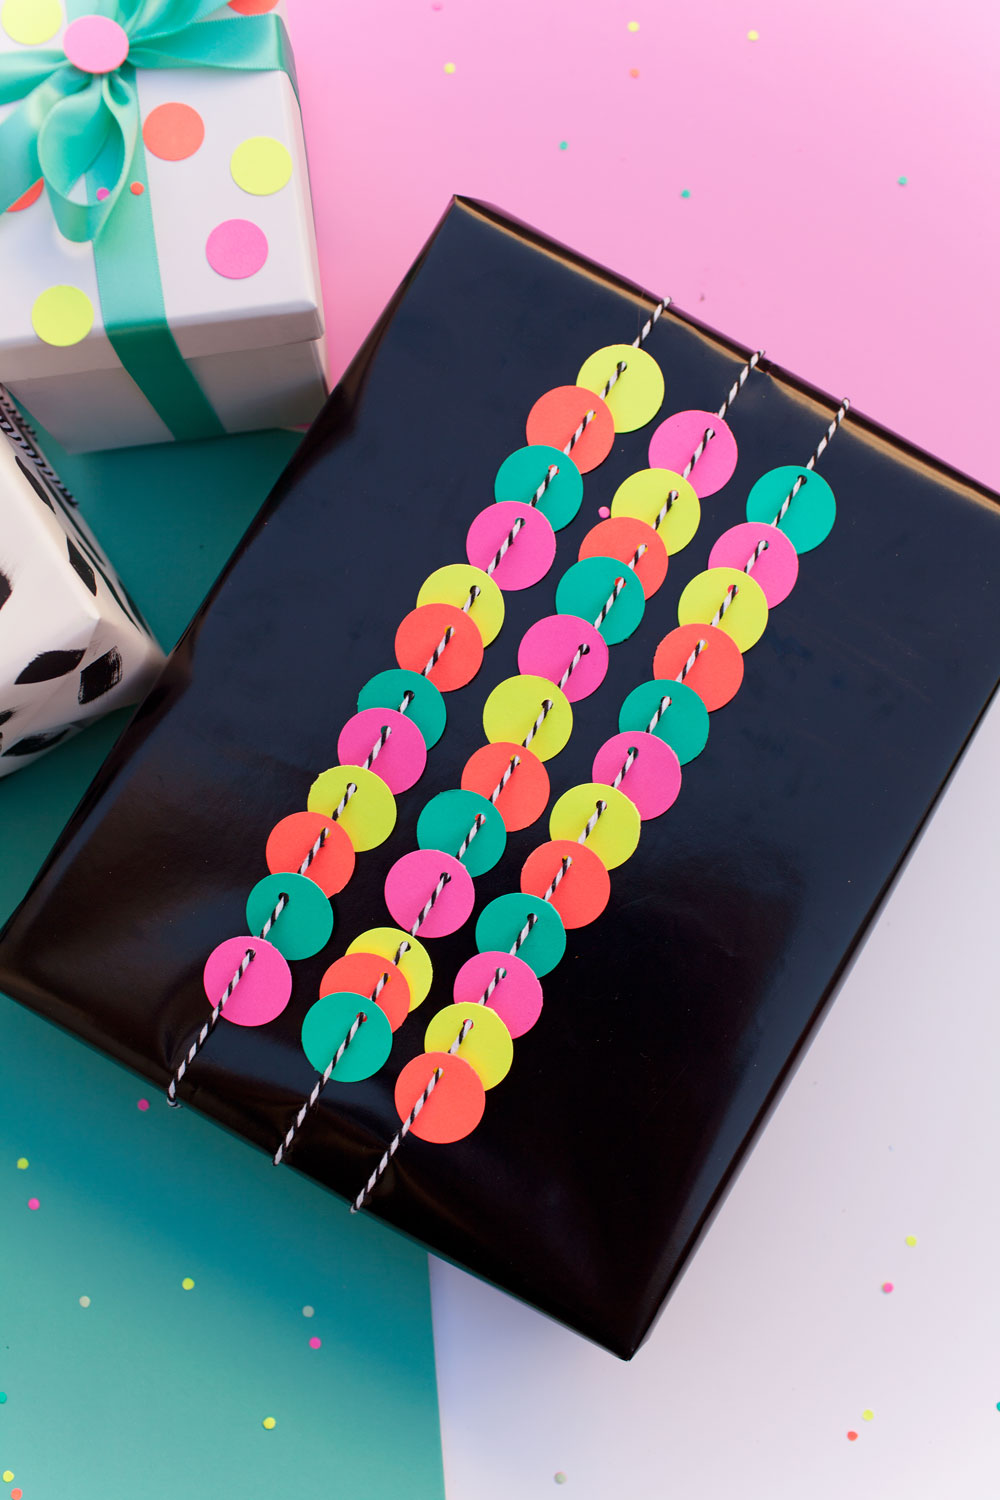 circle-hole-punch-gift-wrapping-ideas